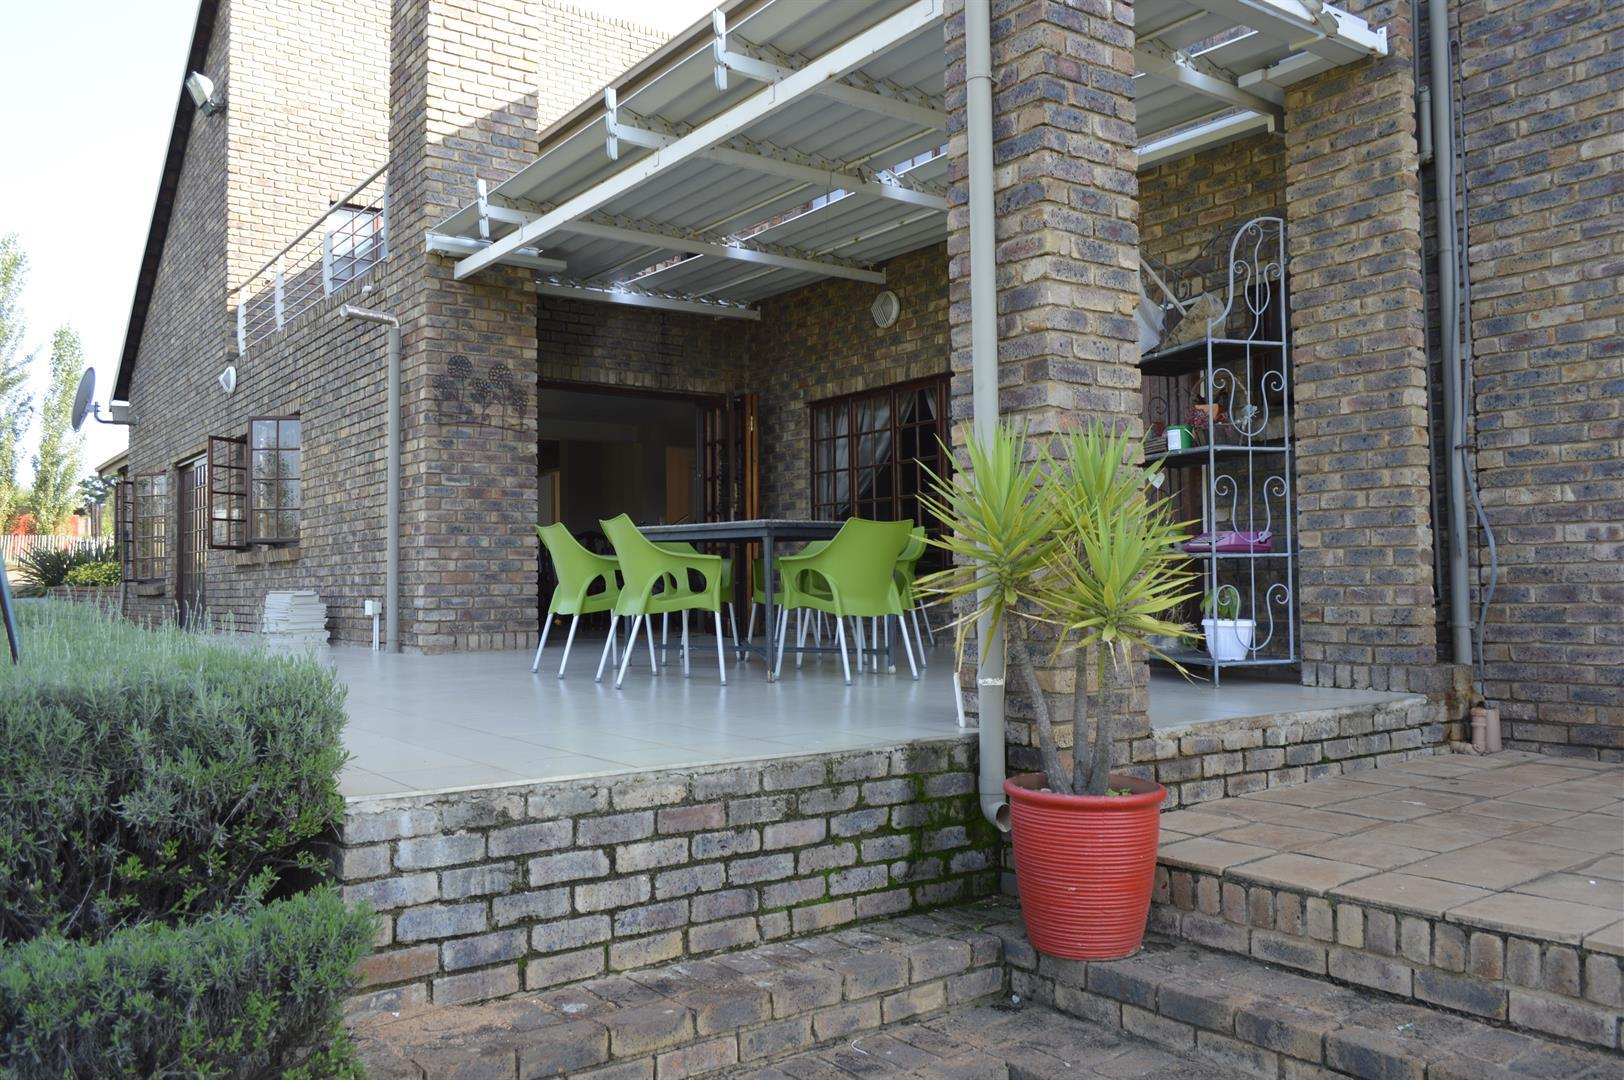 Raslouw A H property for sale. Ref No: 13442161. Picture no 22